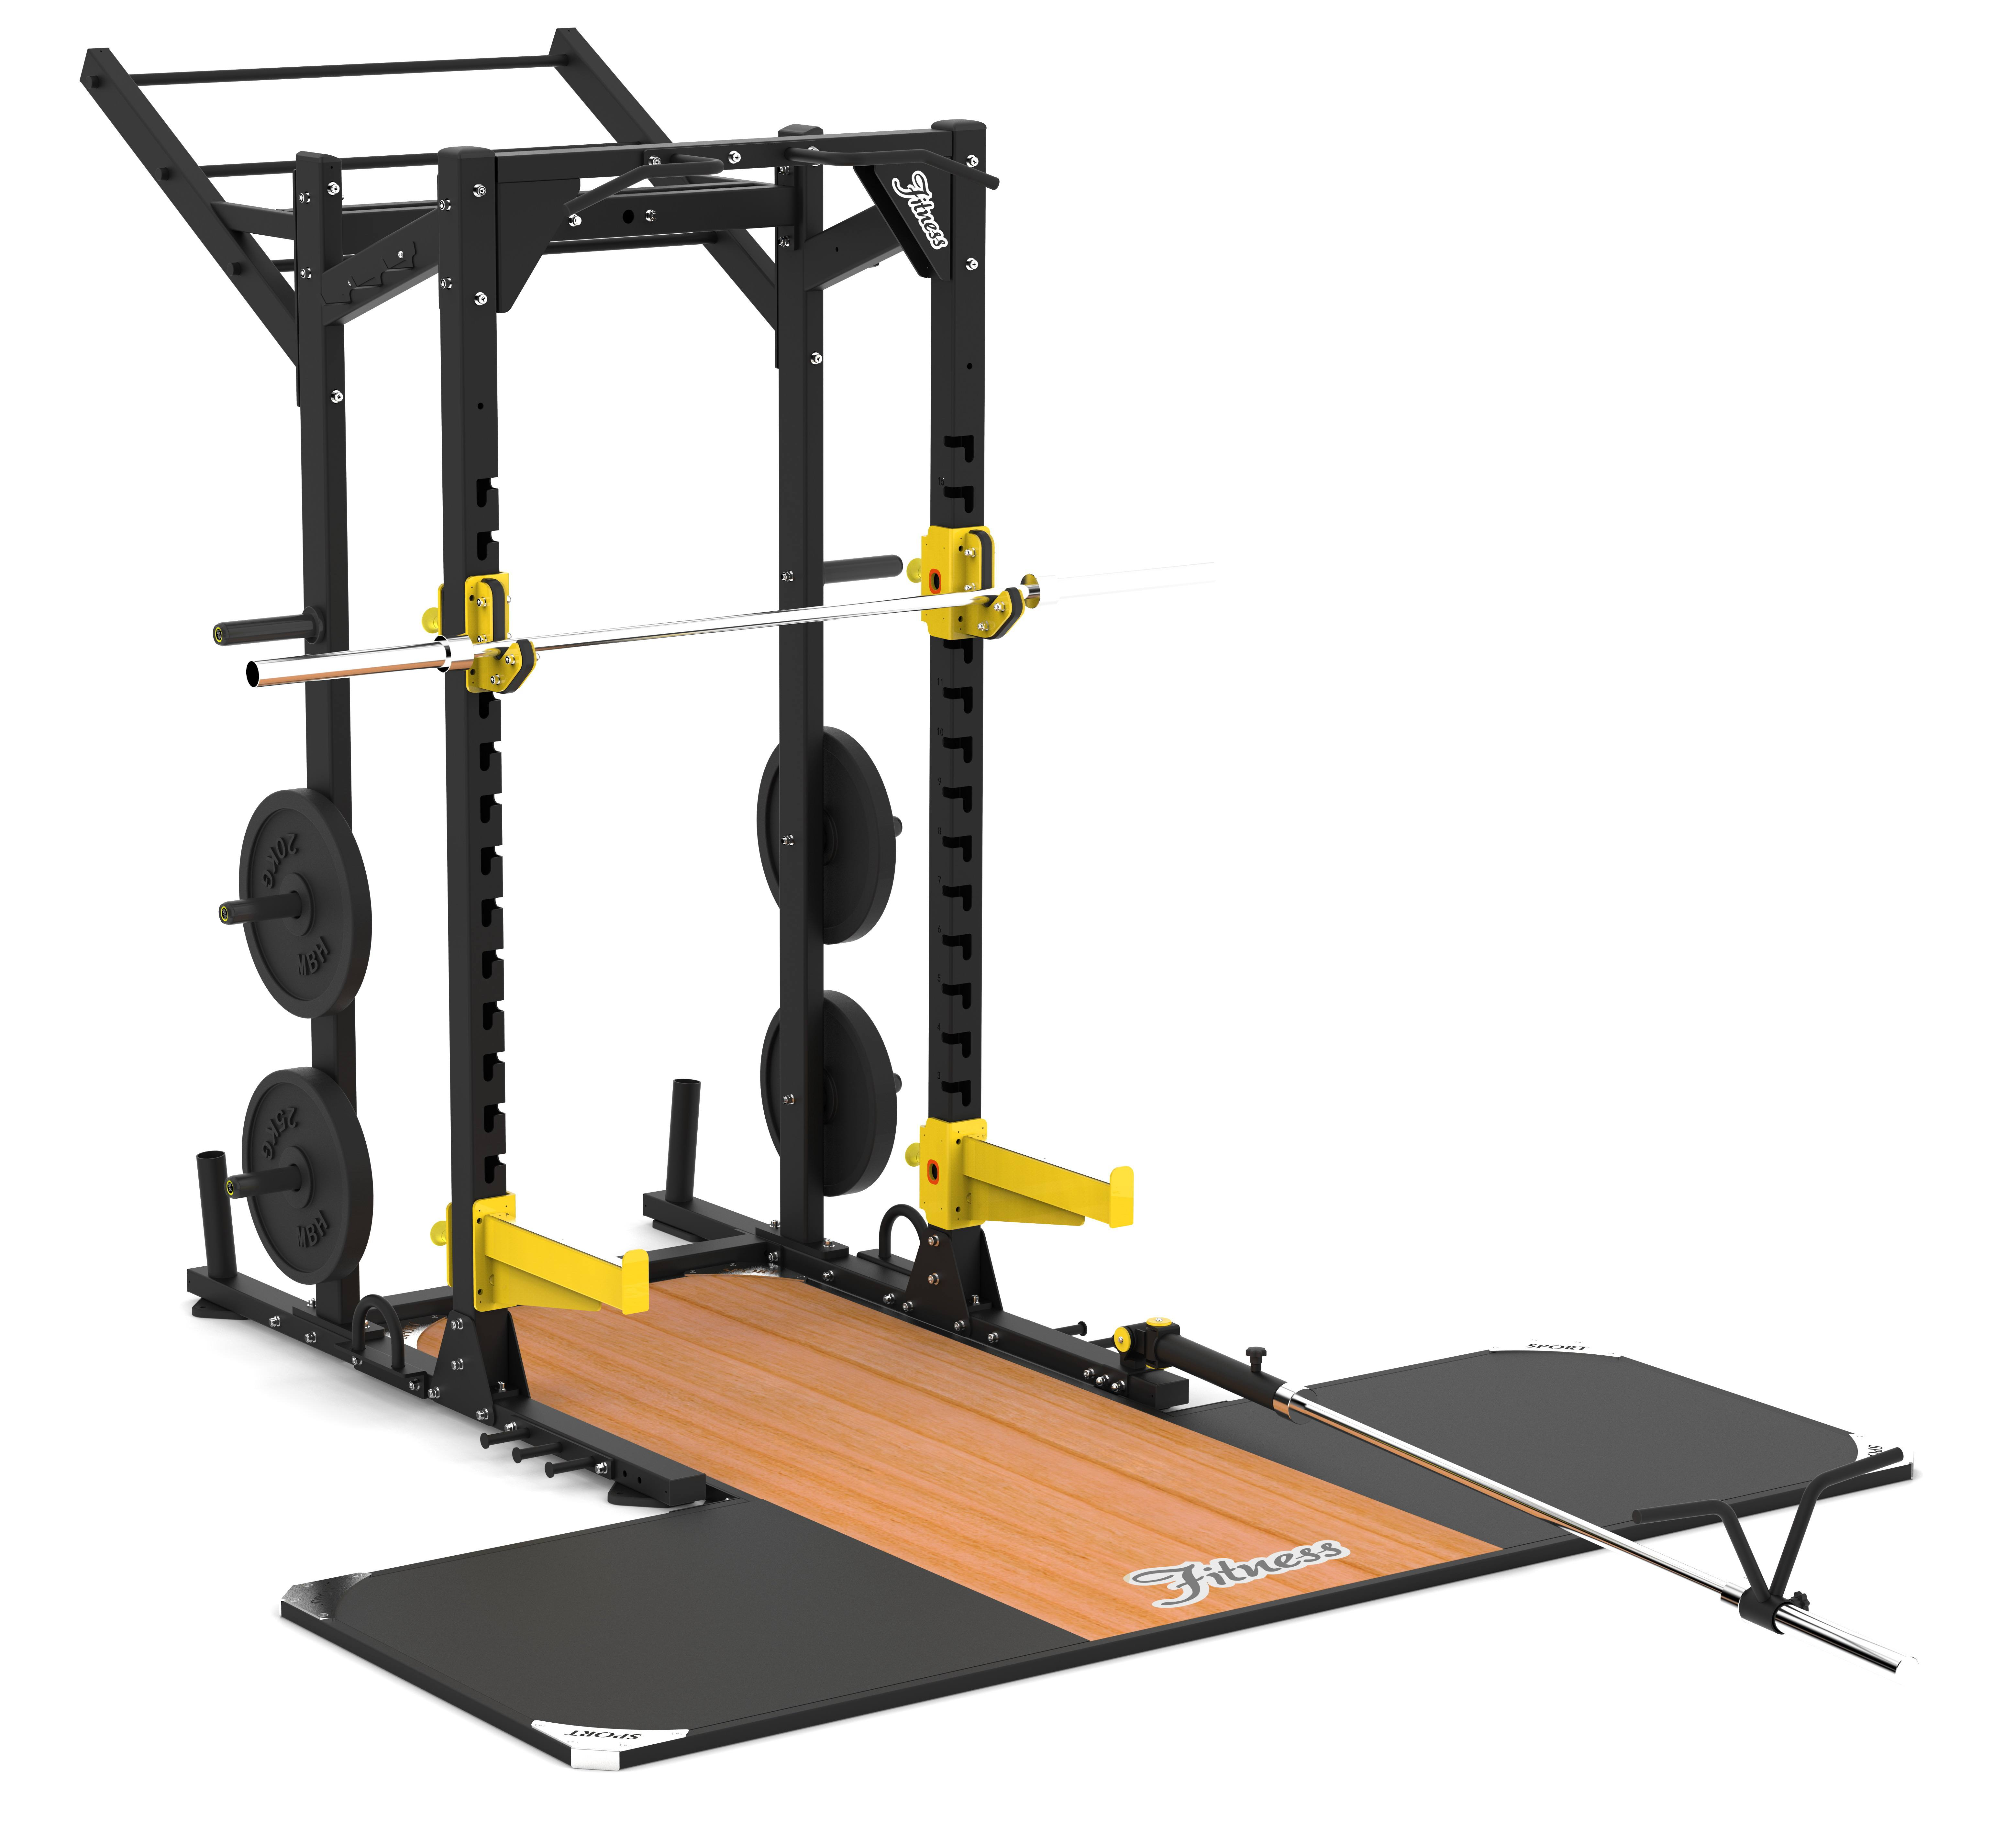 Power rack multi-funzionale per il fitness